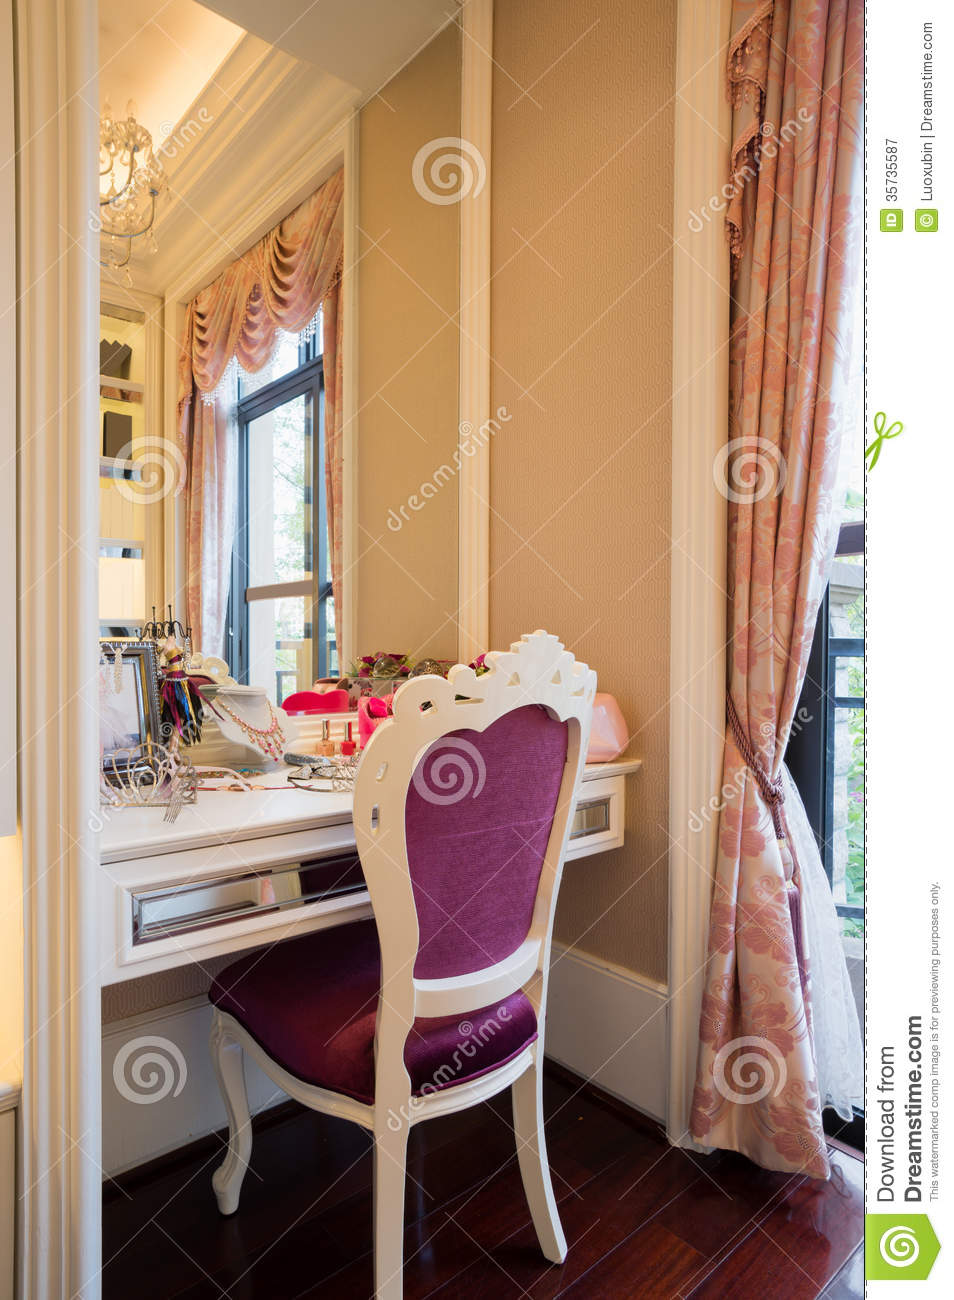 Dressing Room Royalty Free Stock Photography Image 35735587